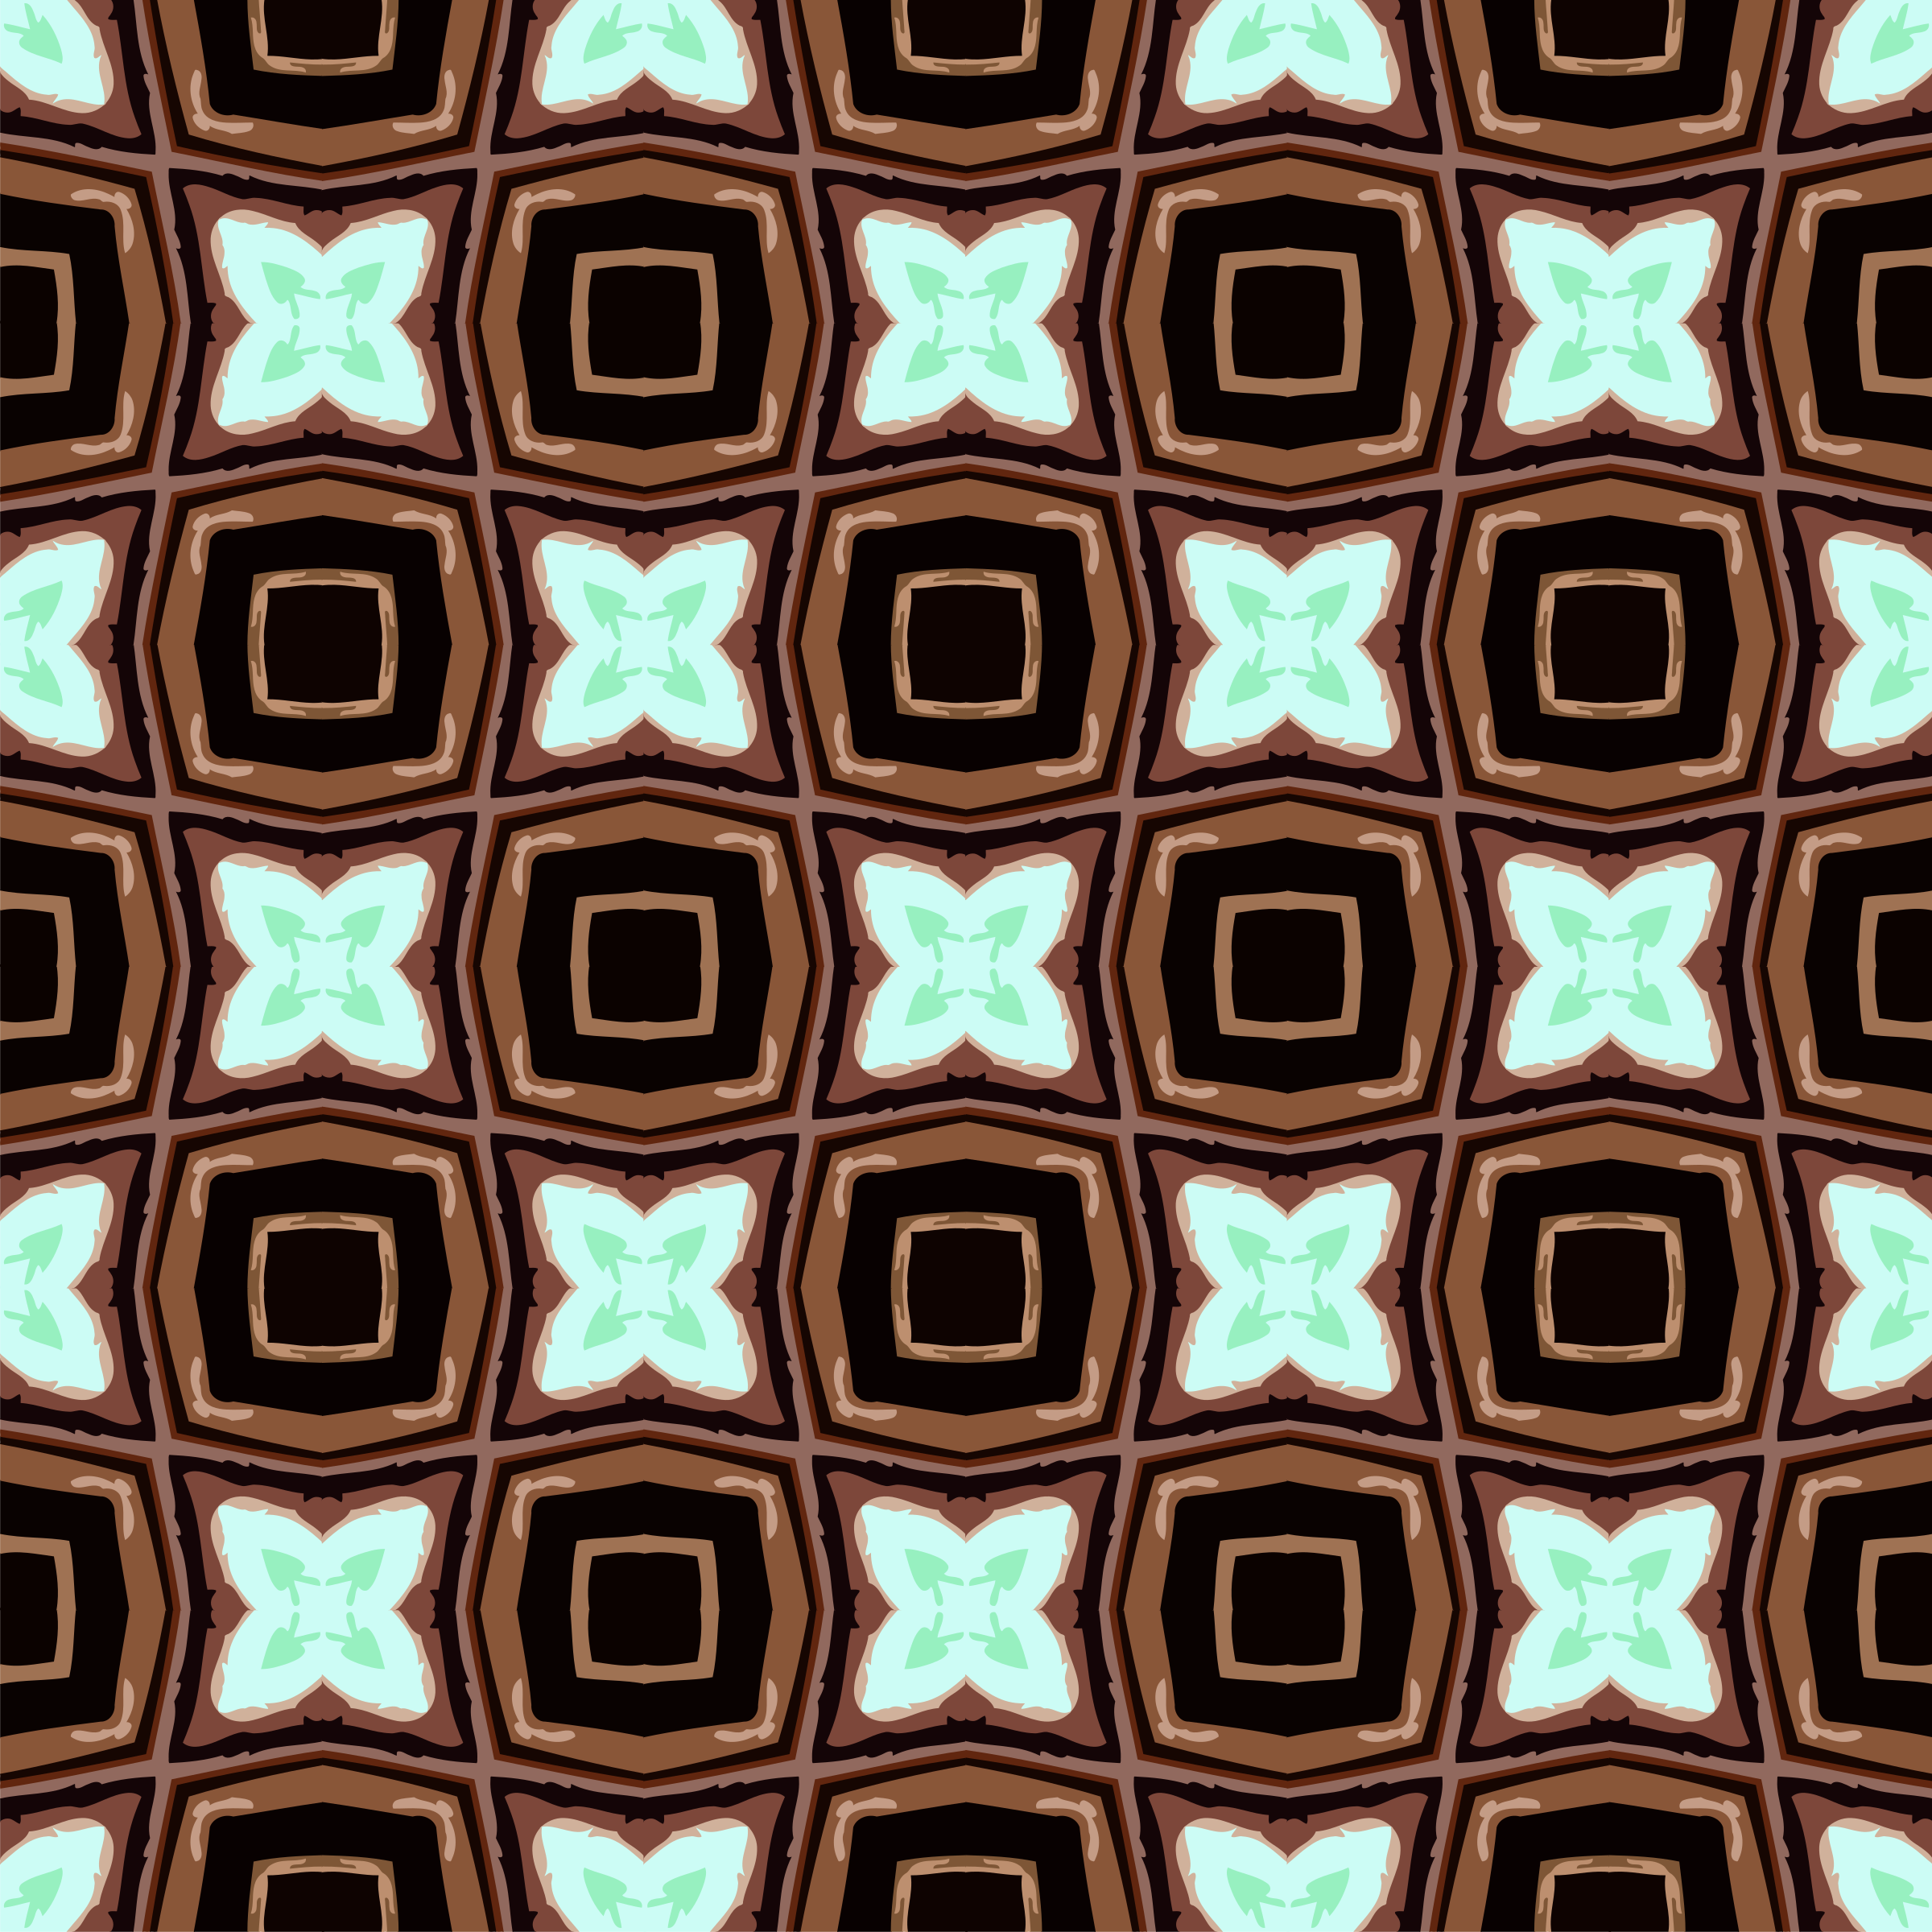 Background pattern 156 (colour 6) by Firkin